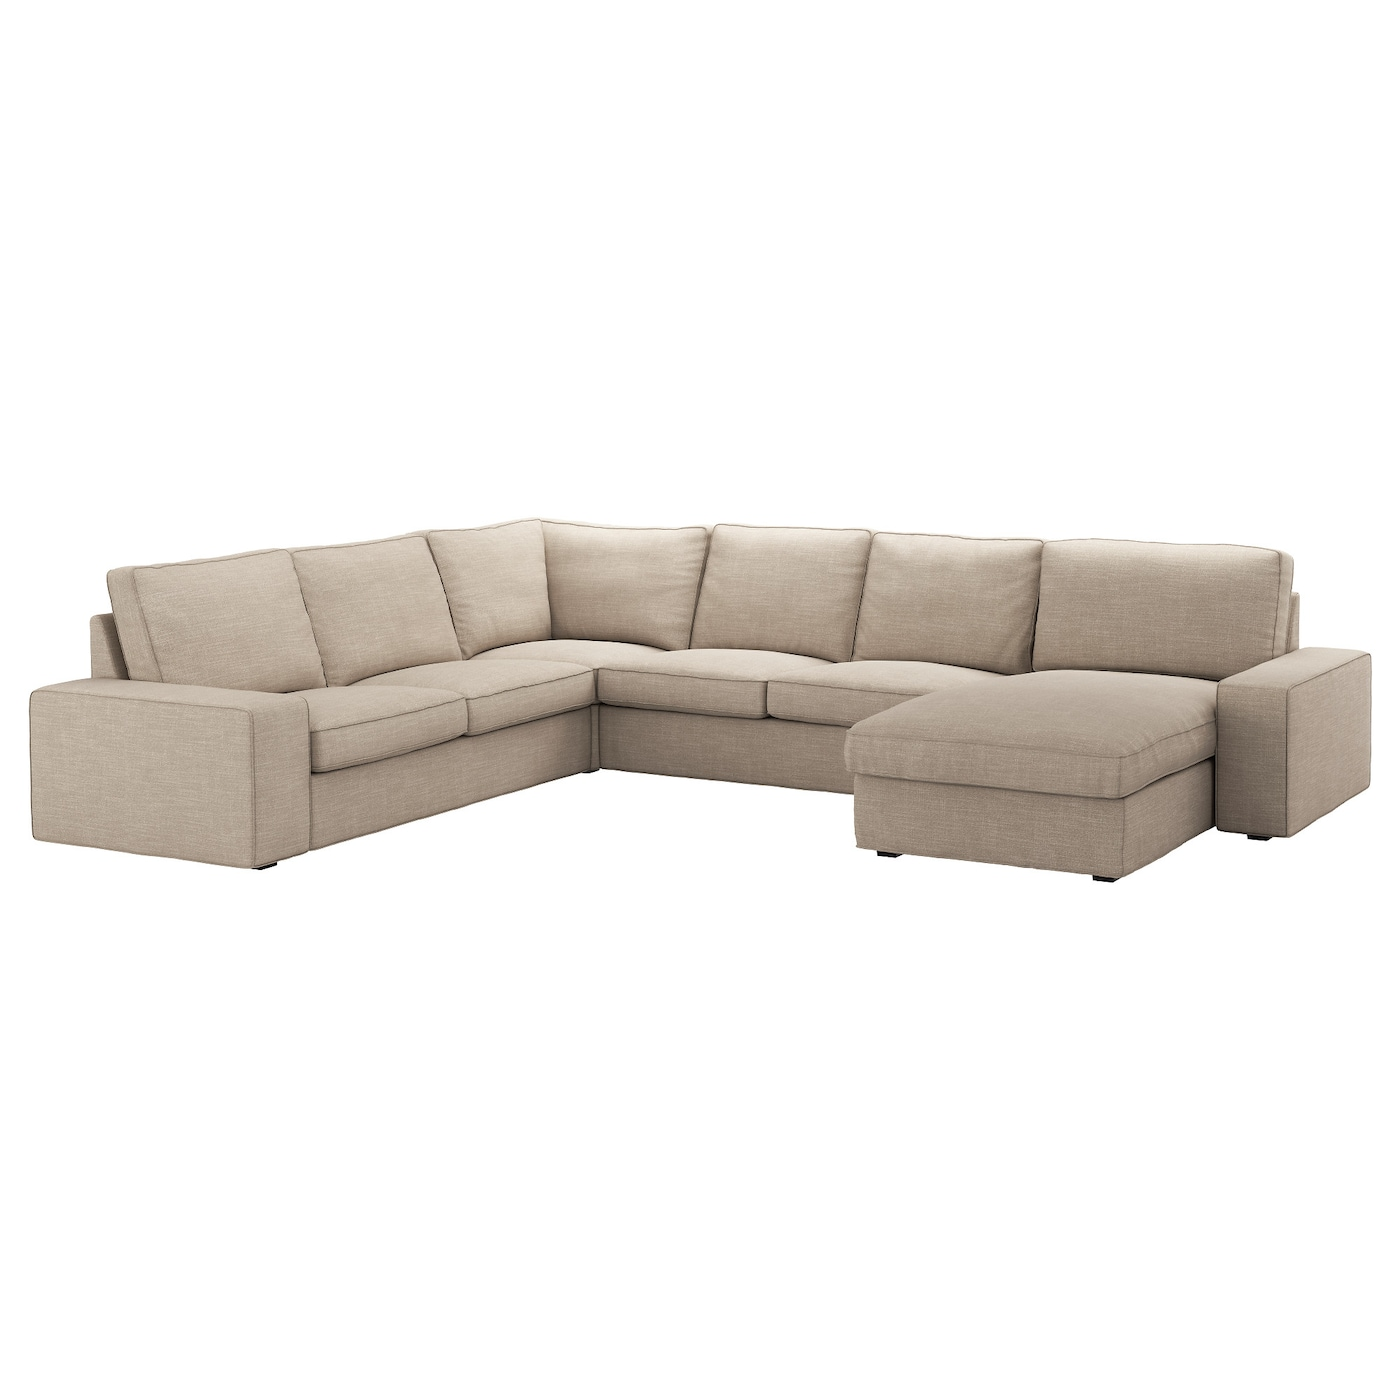 Kivik Corner Sofa 2 2 With Chaise Longue Hillared Beige Ikea